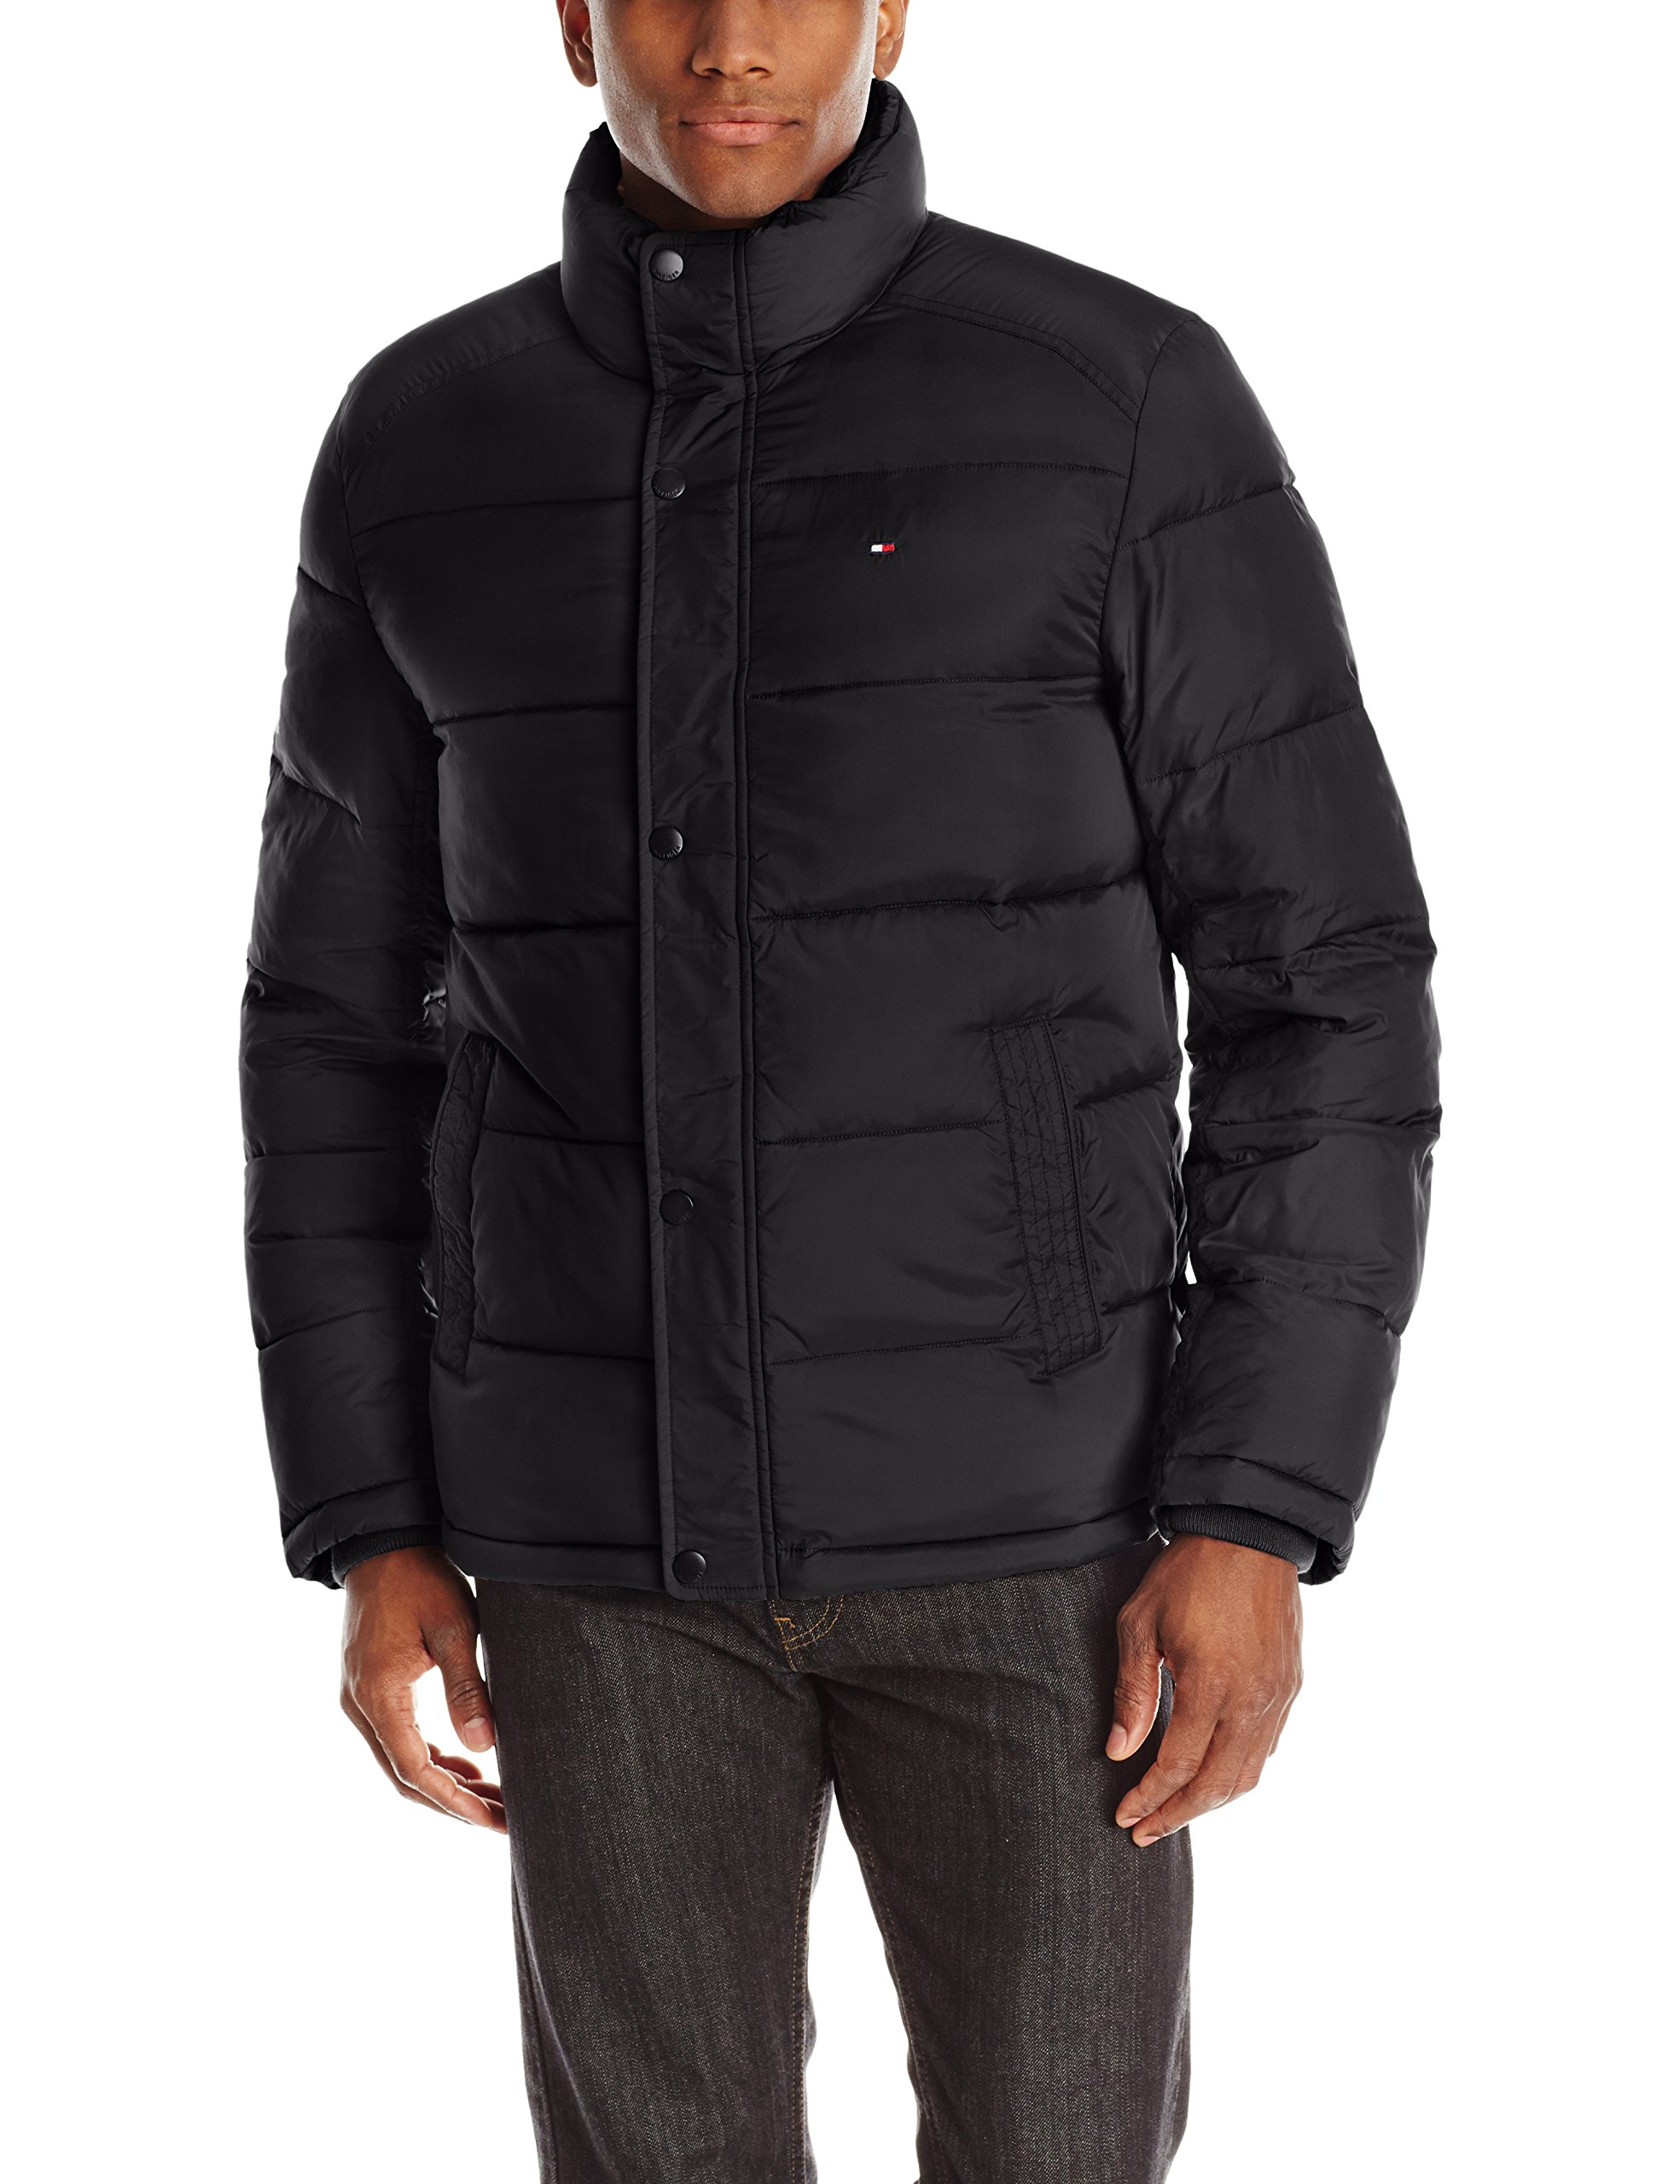 Tommy Hilfiger Men's Classic Puffer Jacket, Black, Small